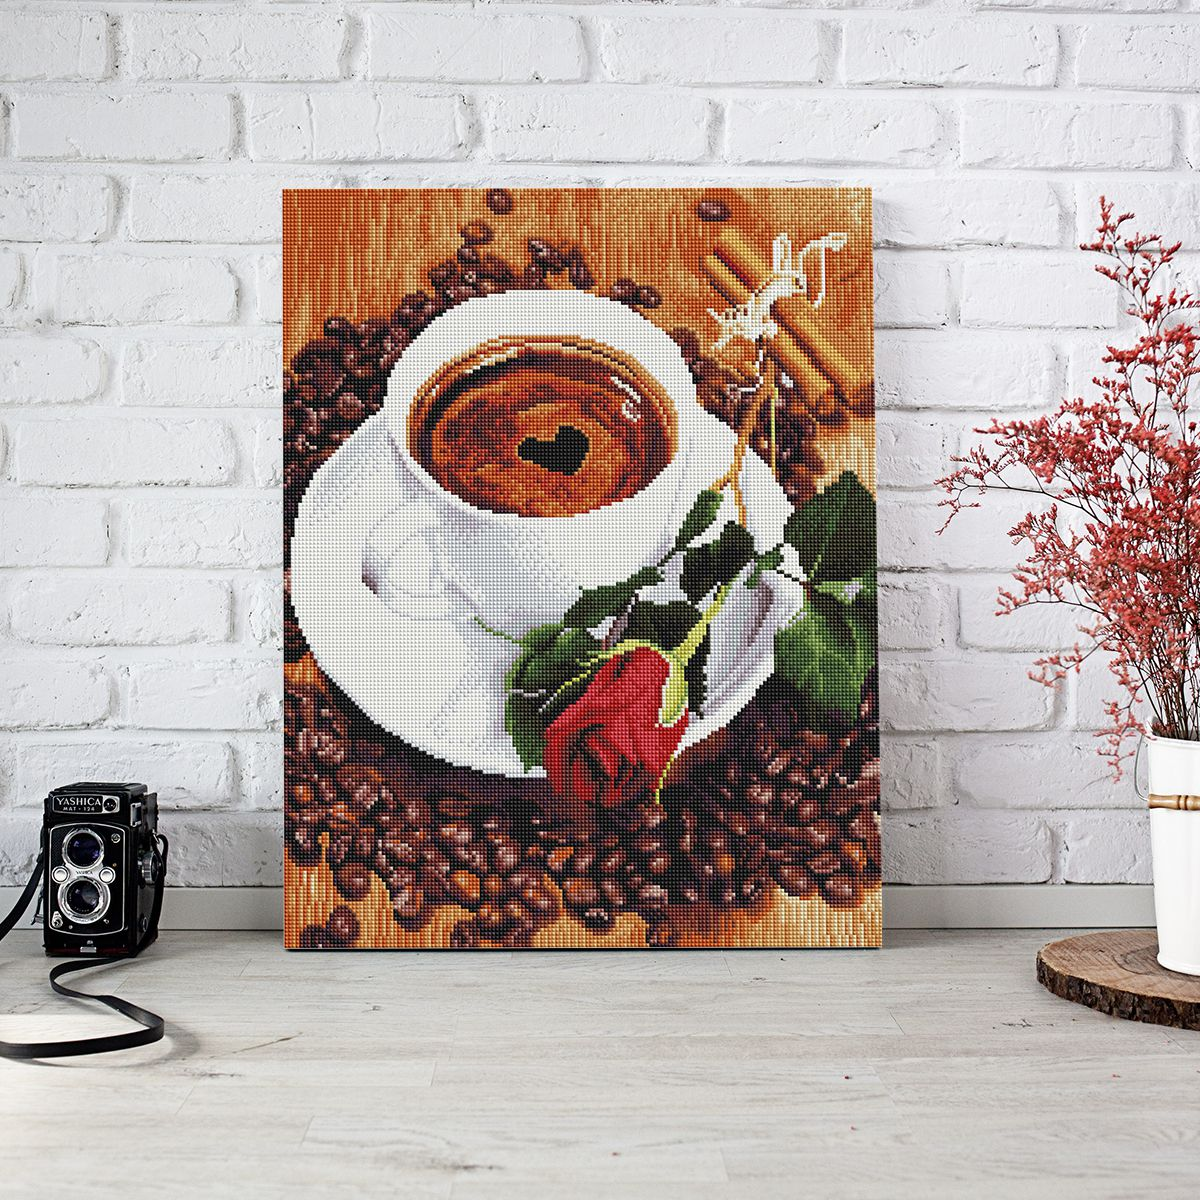 Morning Coffee - Diamond Painting